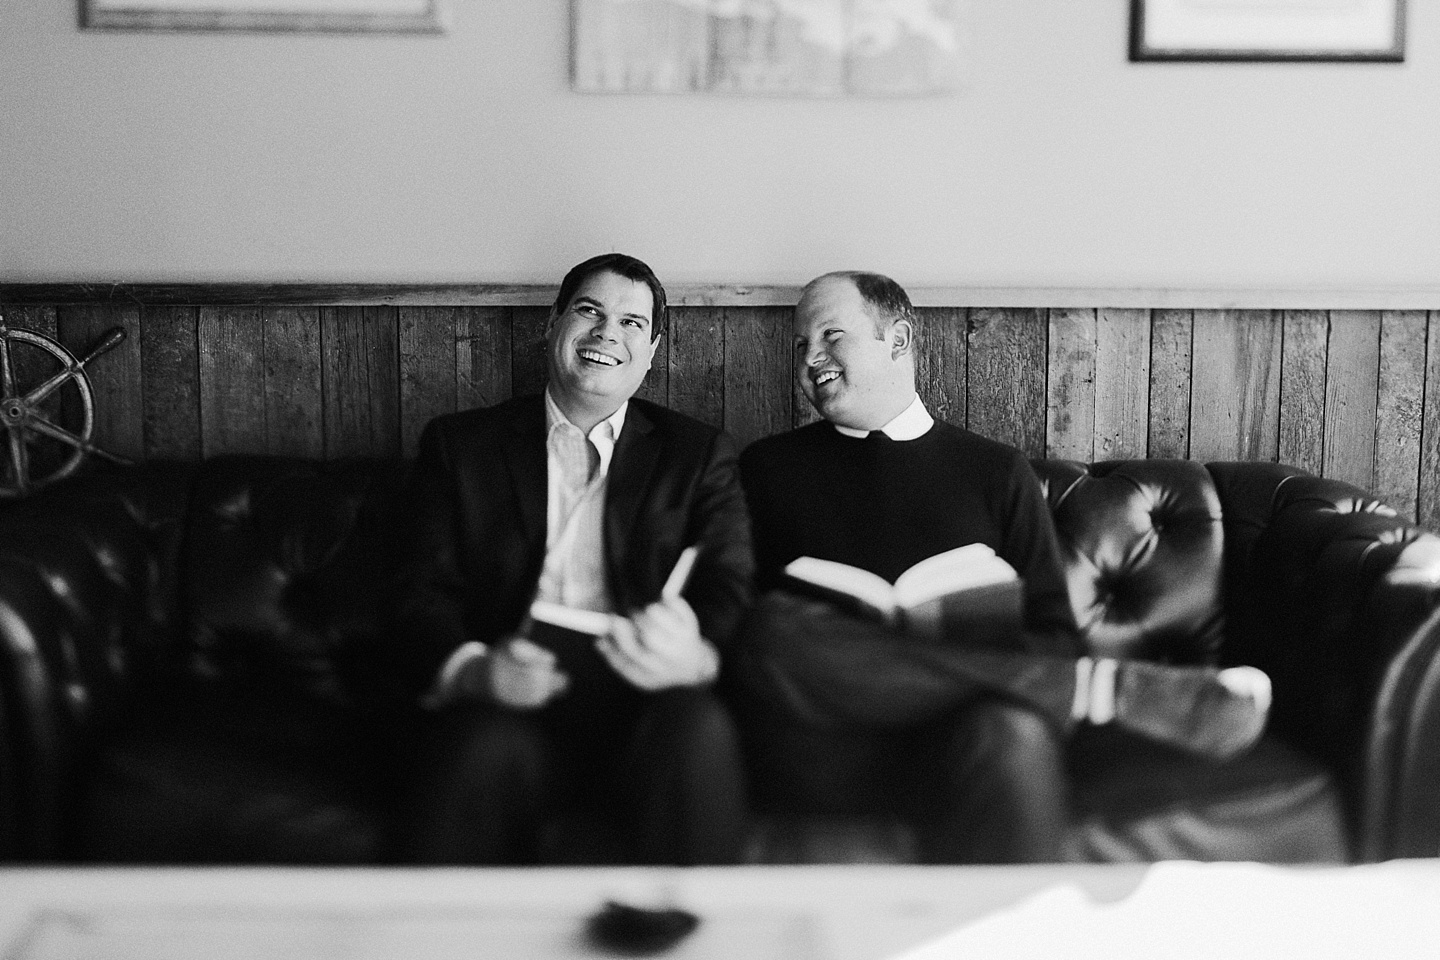 016 cute gay engagement pictures dc